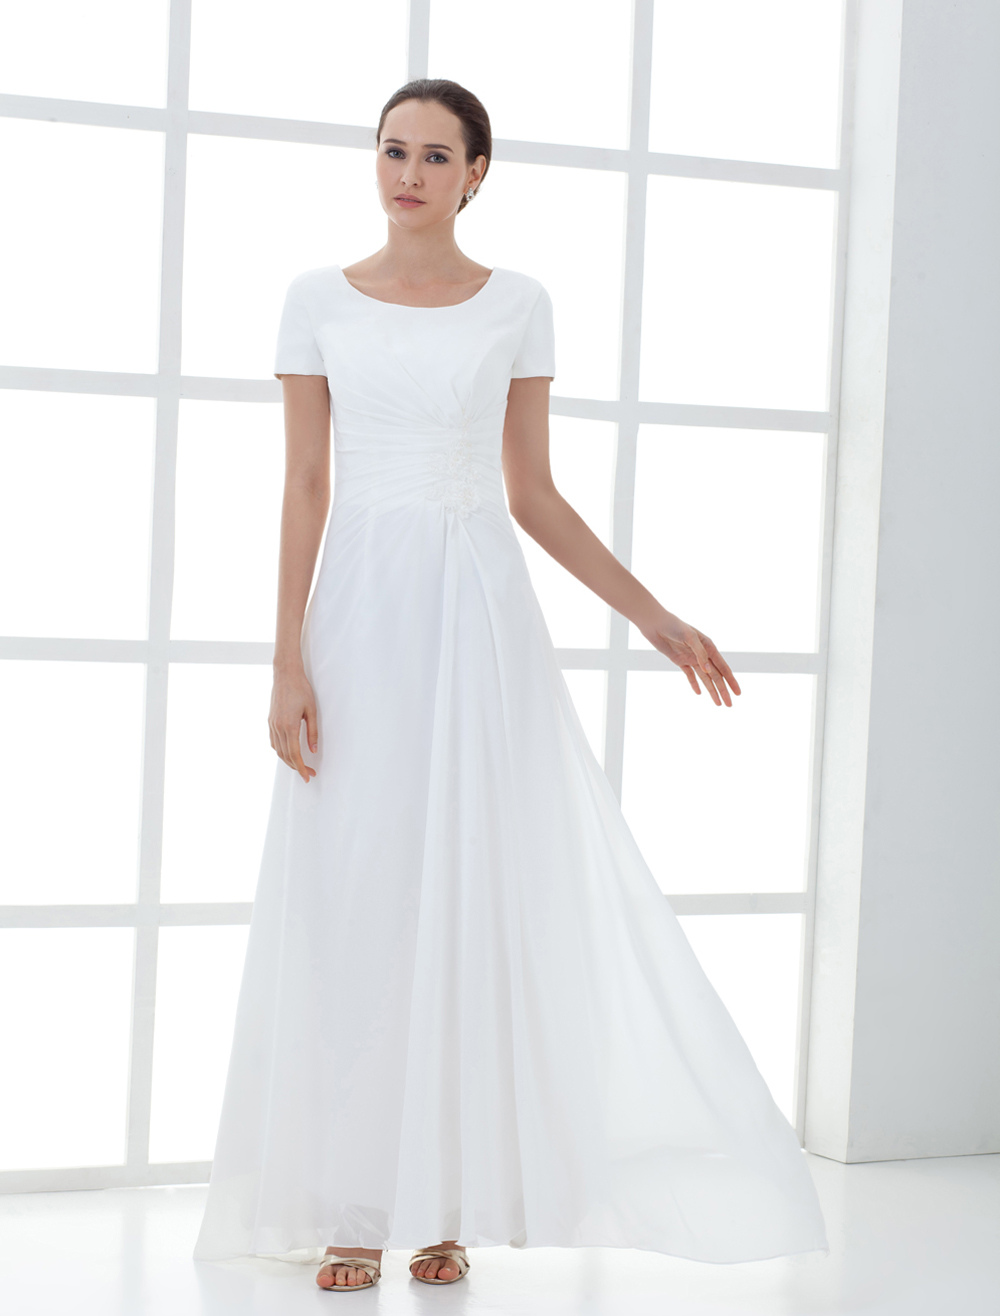 Beautiful White Short Sleeve Pleated Chiffon Mother of the Bride Dress